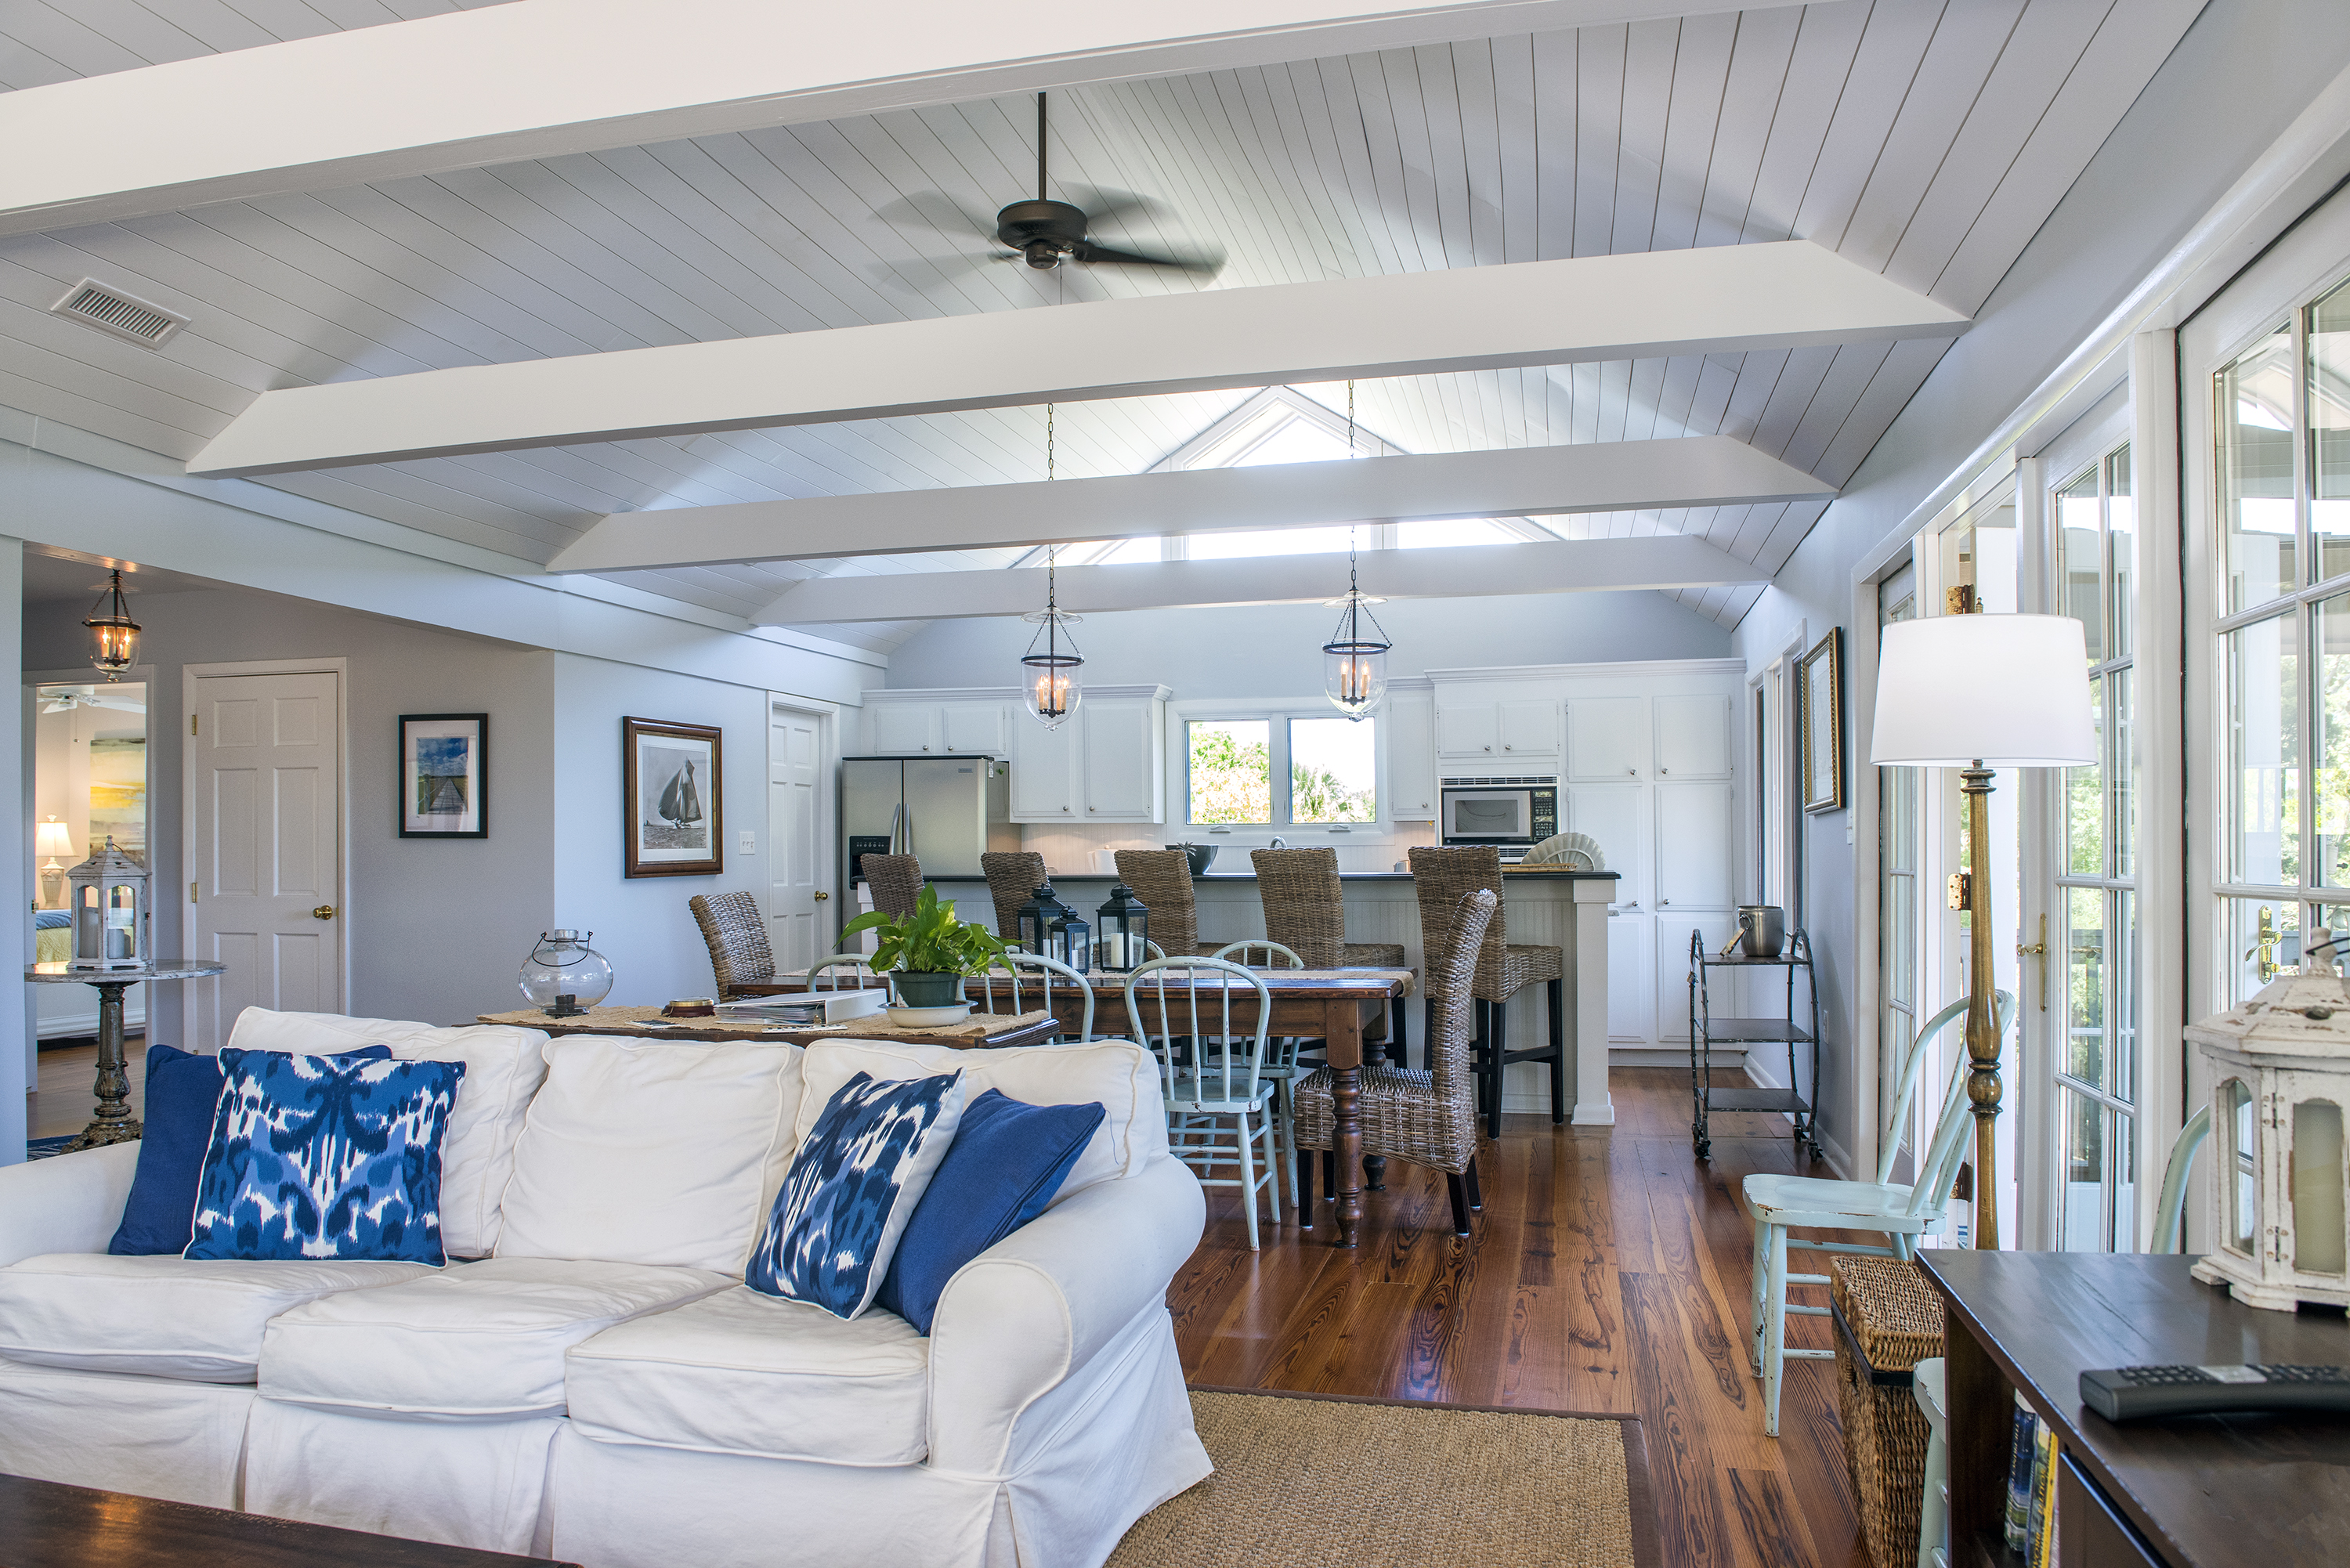 Open living area with decks and screened porch access.